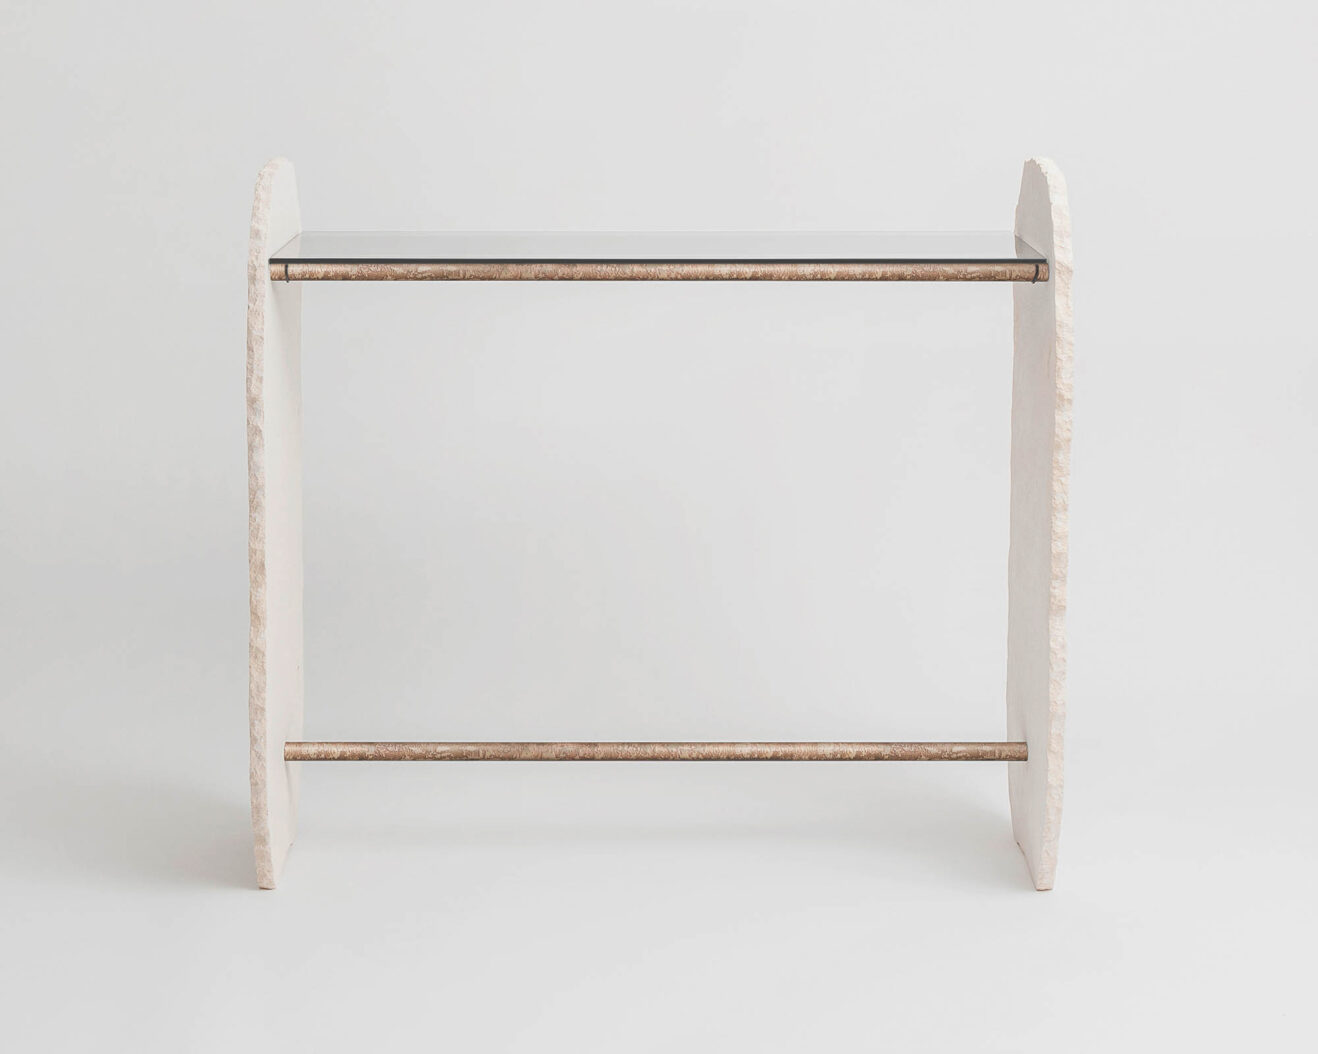 Frederic-Saulou-Stoique-Console-Savannah Bay Gallery-2